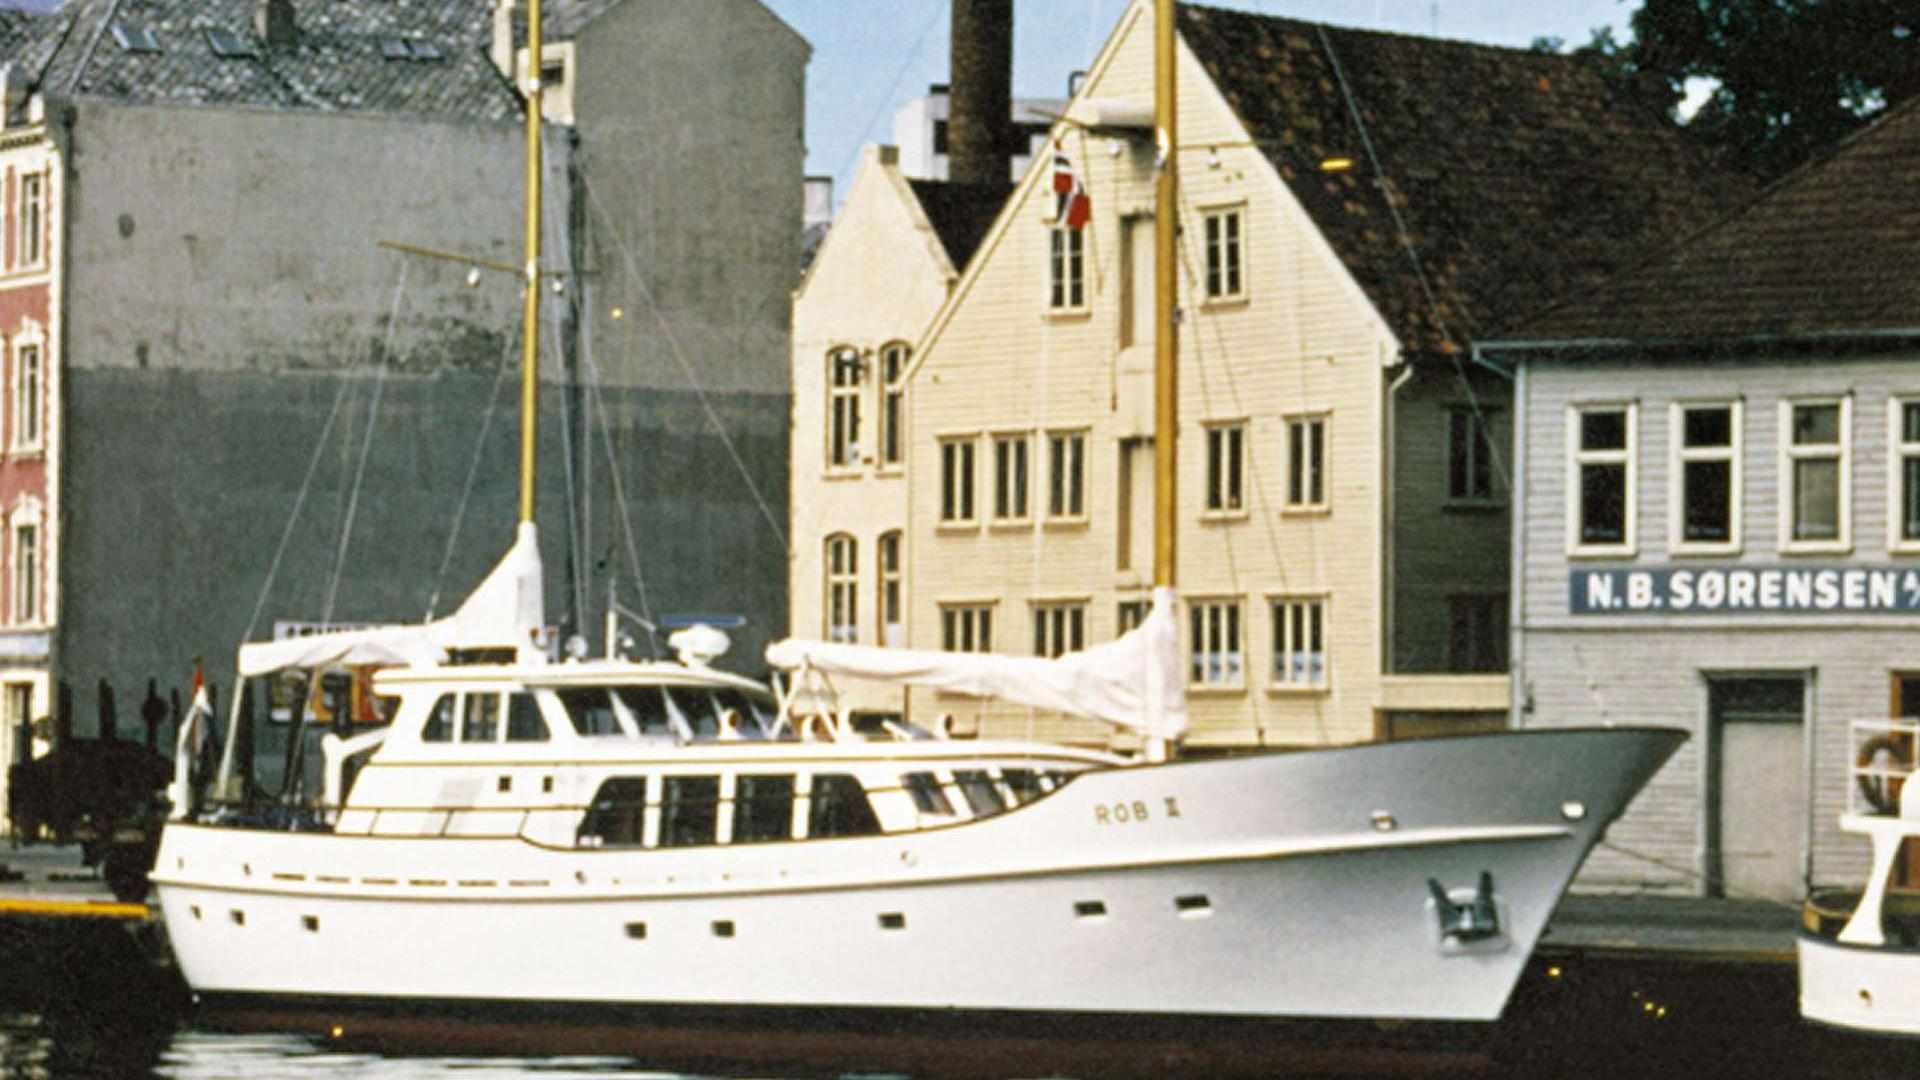 spirit-of-freedom-sailing-yacht-feadship-1972-25m-profile